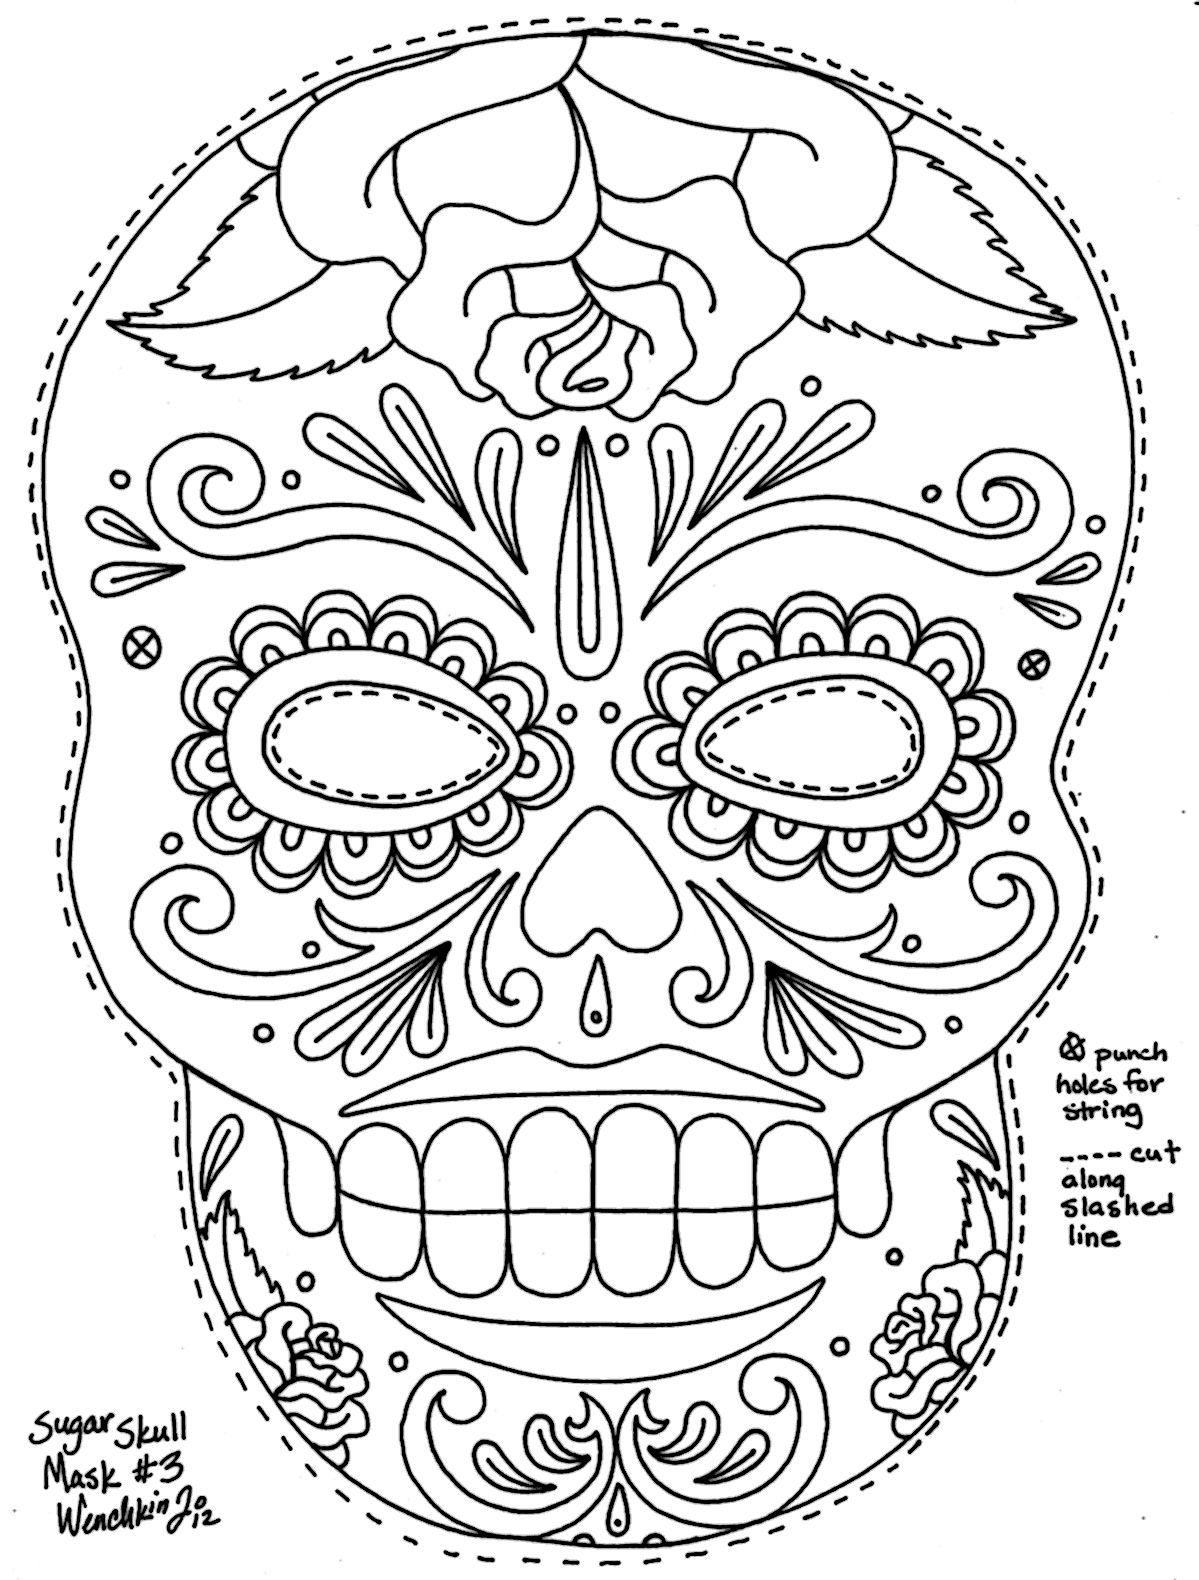 candy skull coloring pages leigh young illustration sugar skulls candy coloring pages skull